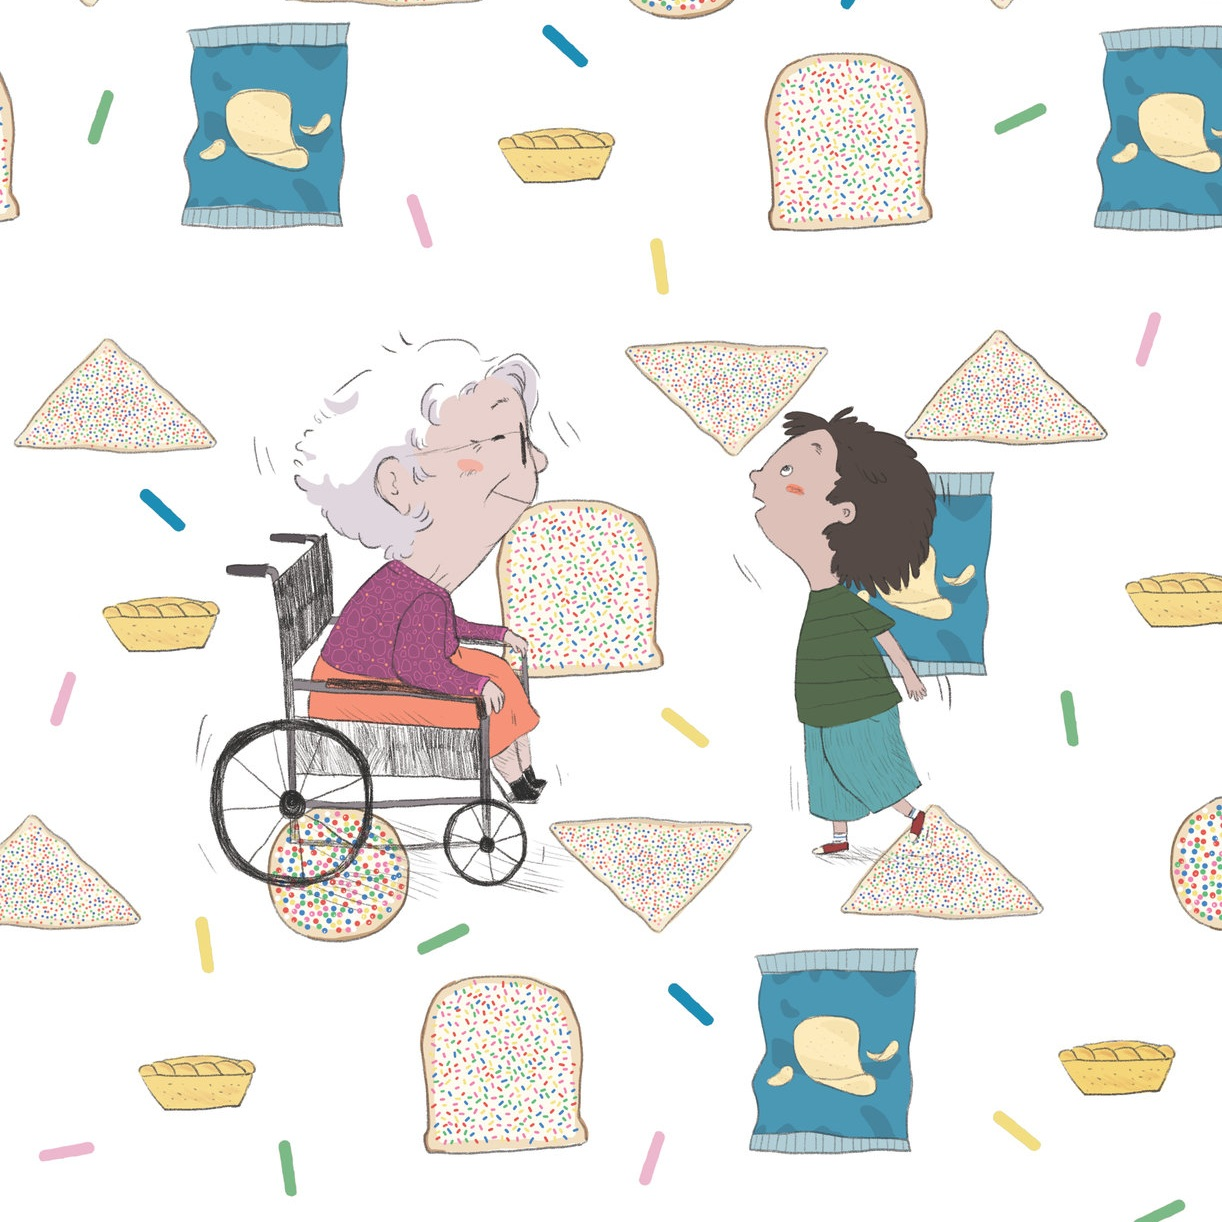 "My Grandma Is 100 - In 2019 Aimee Chan published her first children's picture book. ""My Grandma Is 100"" asks the question that every child wants to know. What present do you buy for someone who is turning 100?My Grandma Is 100 can be purchased online at grandmais100.com. Pre-orders will be shipped from October 2019."